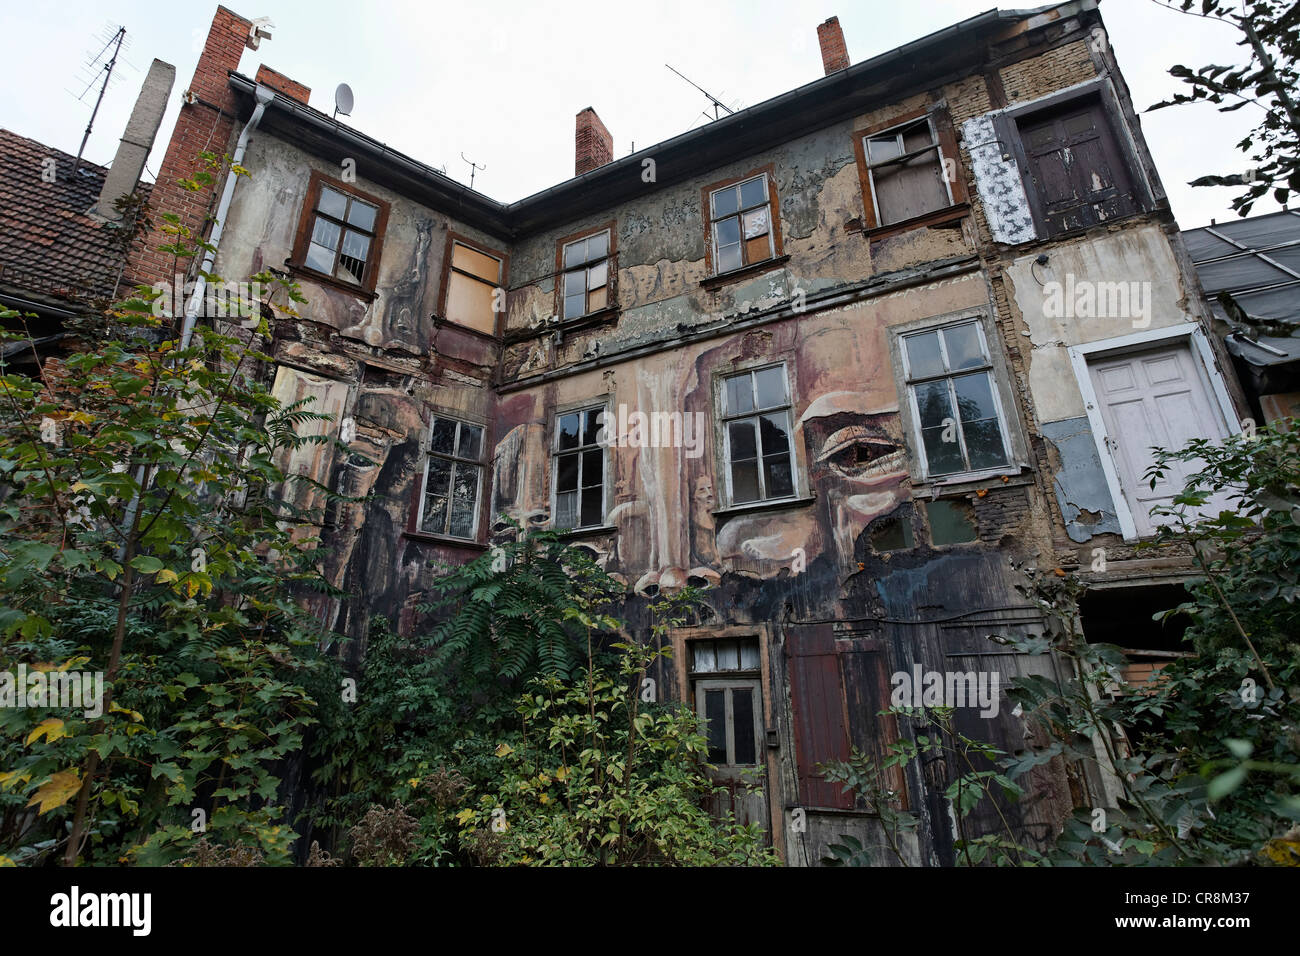 Picturesque, run-down house in the historic centre of Erfurt, Thuringia, Germany, Europe - Stock Image